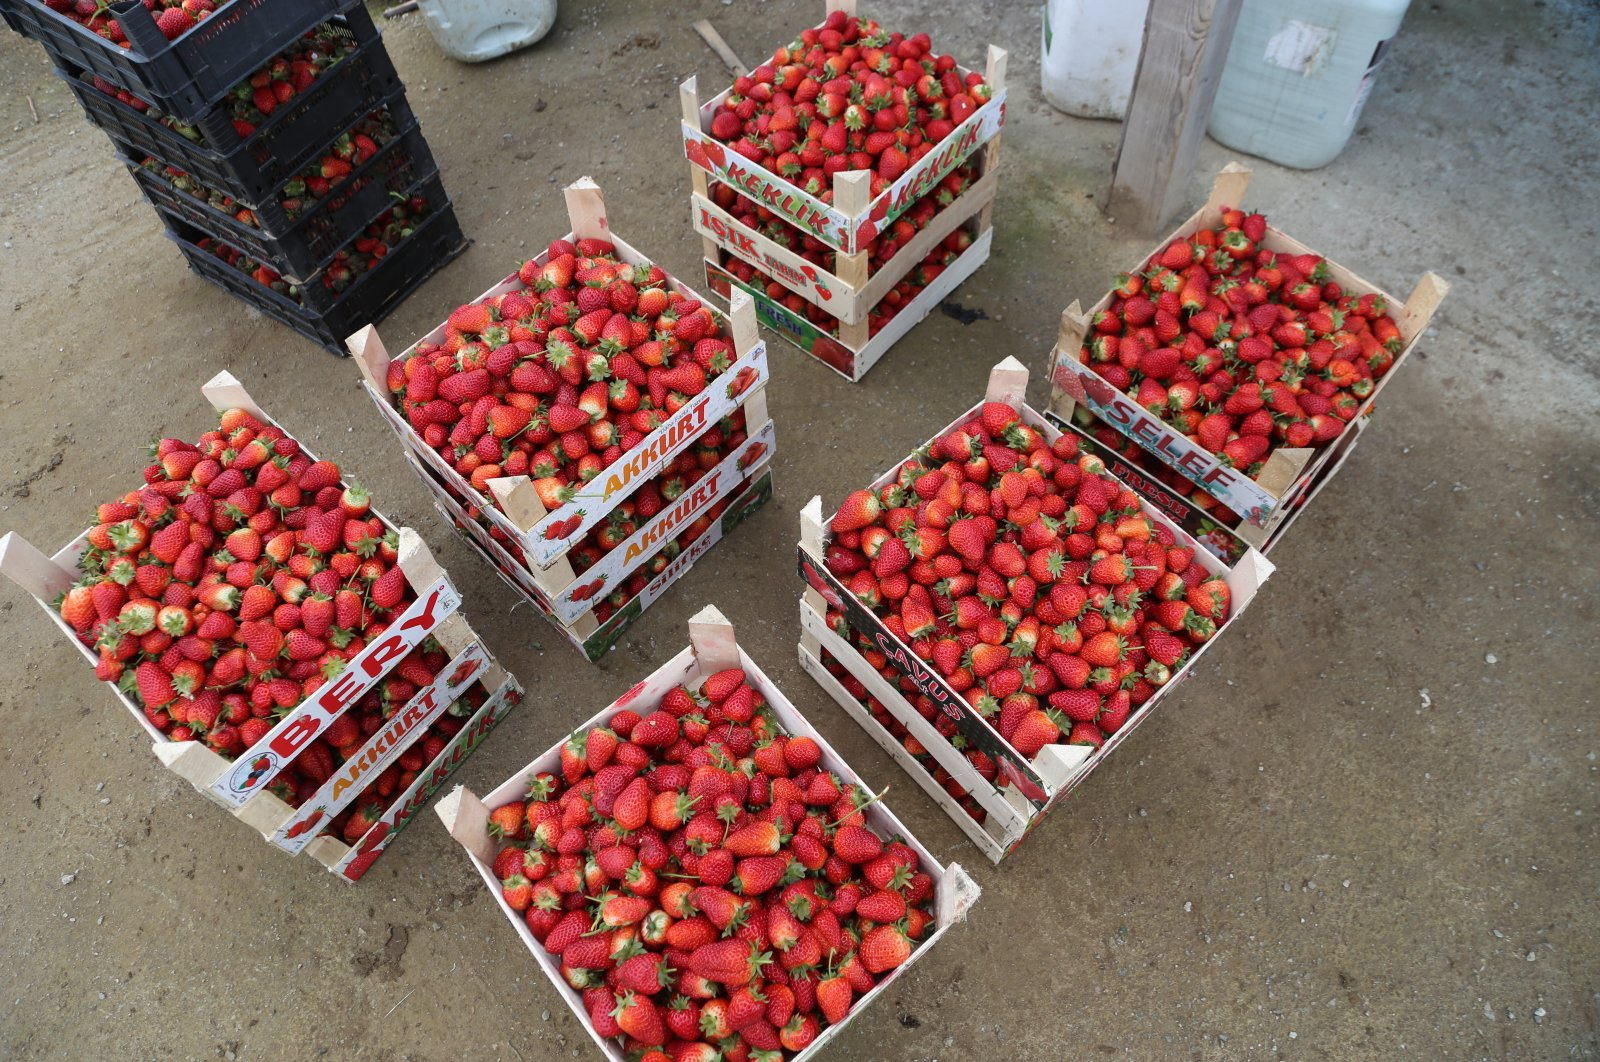 Strawberry production reached up to 1,000 tons annually in Ordu province in Turkey's Black Sea region, a region famous for hazelnut production, April 5, 2020. (AA Photo)